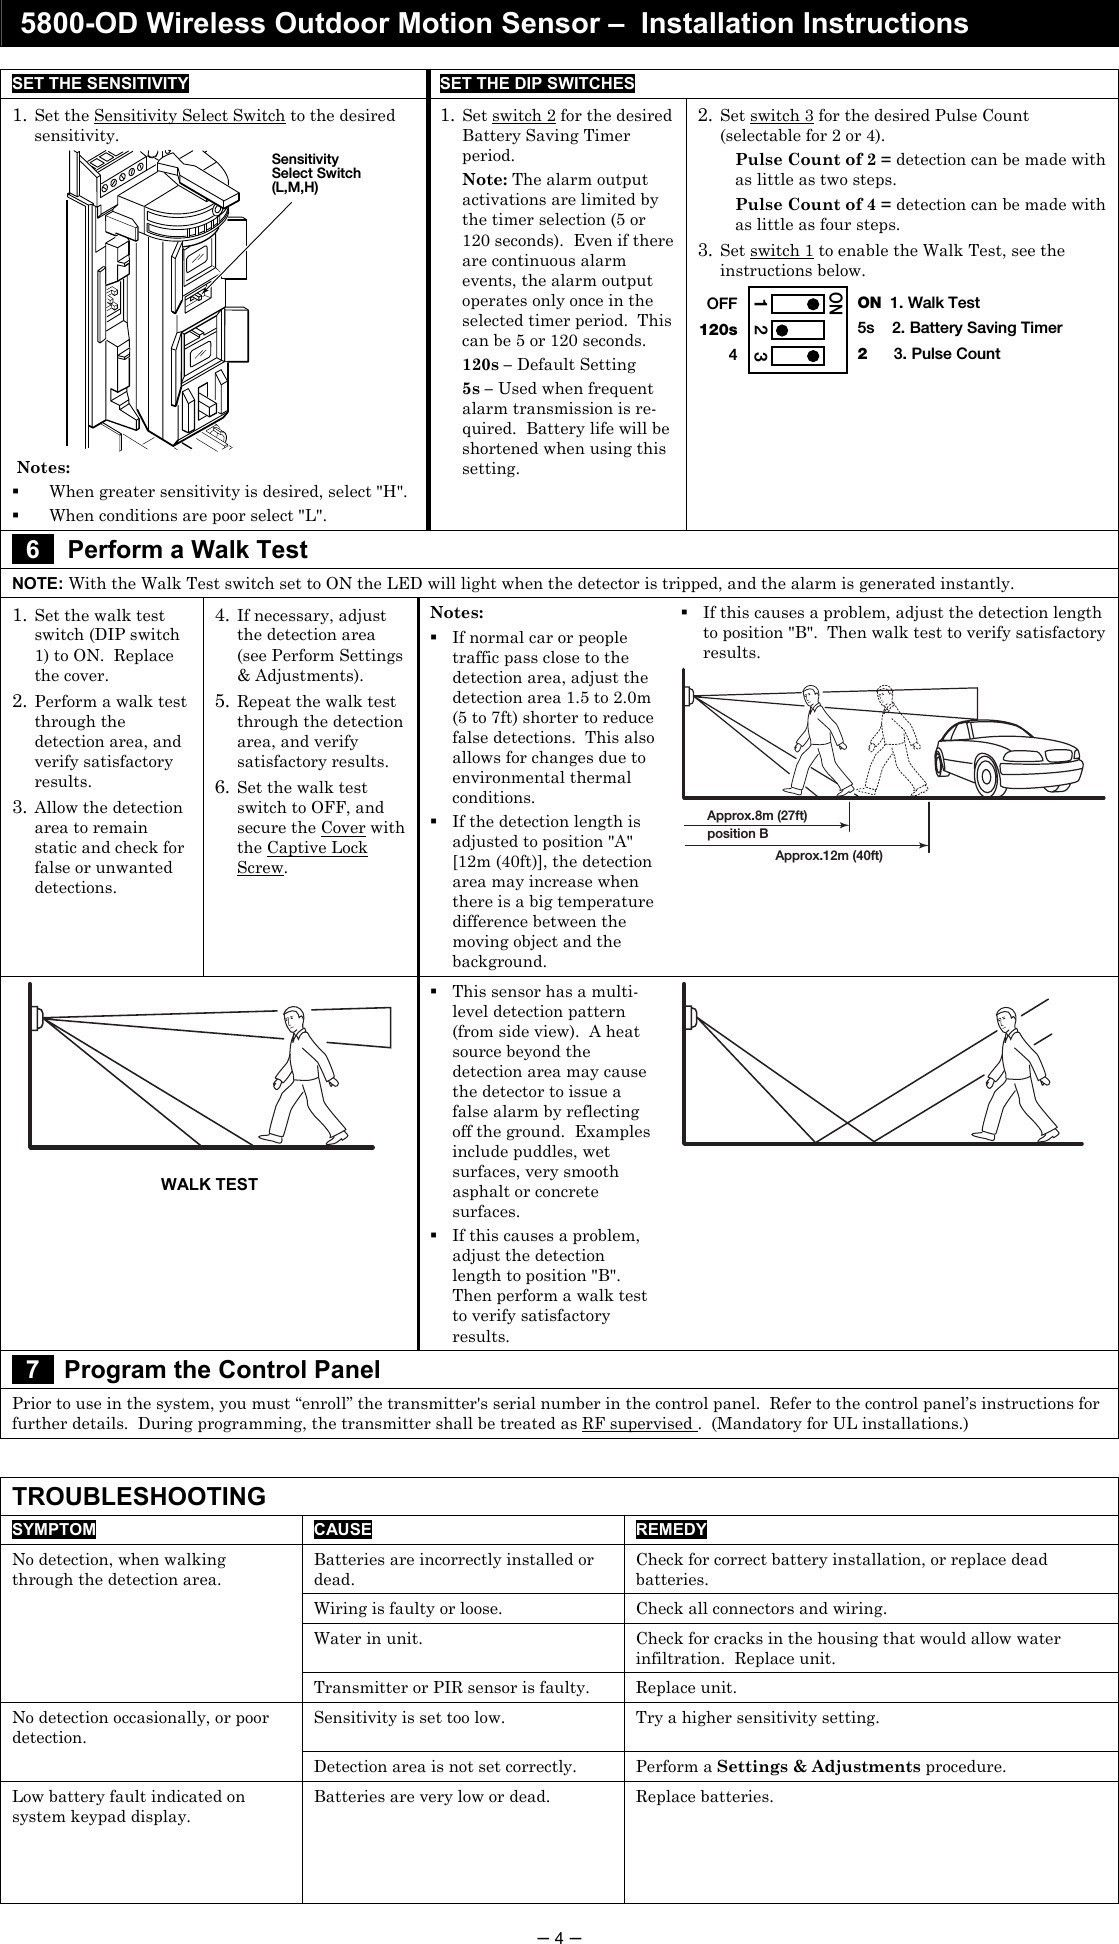 New 2002 Dodge Ram 1500 Alarm Wiring Diagram #diagram #